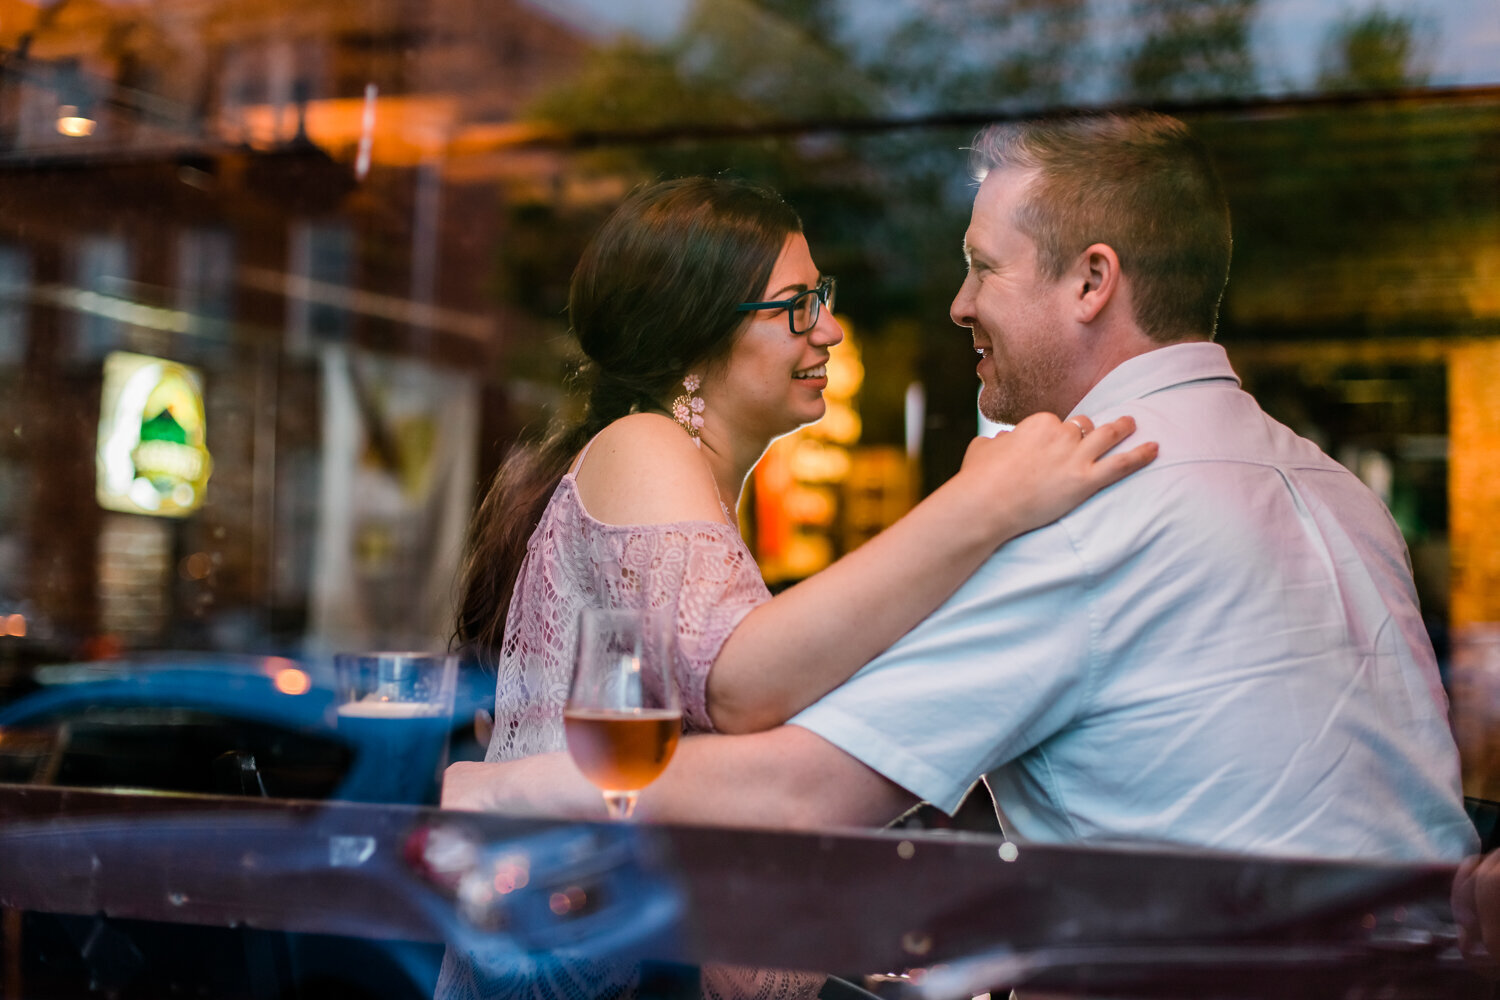 Engagement photo taken through the window at a bar in St. Louis